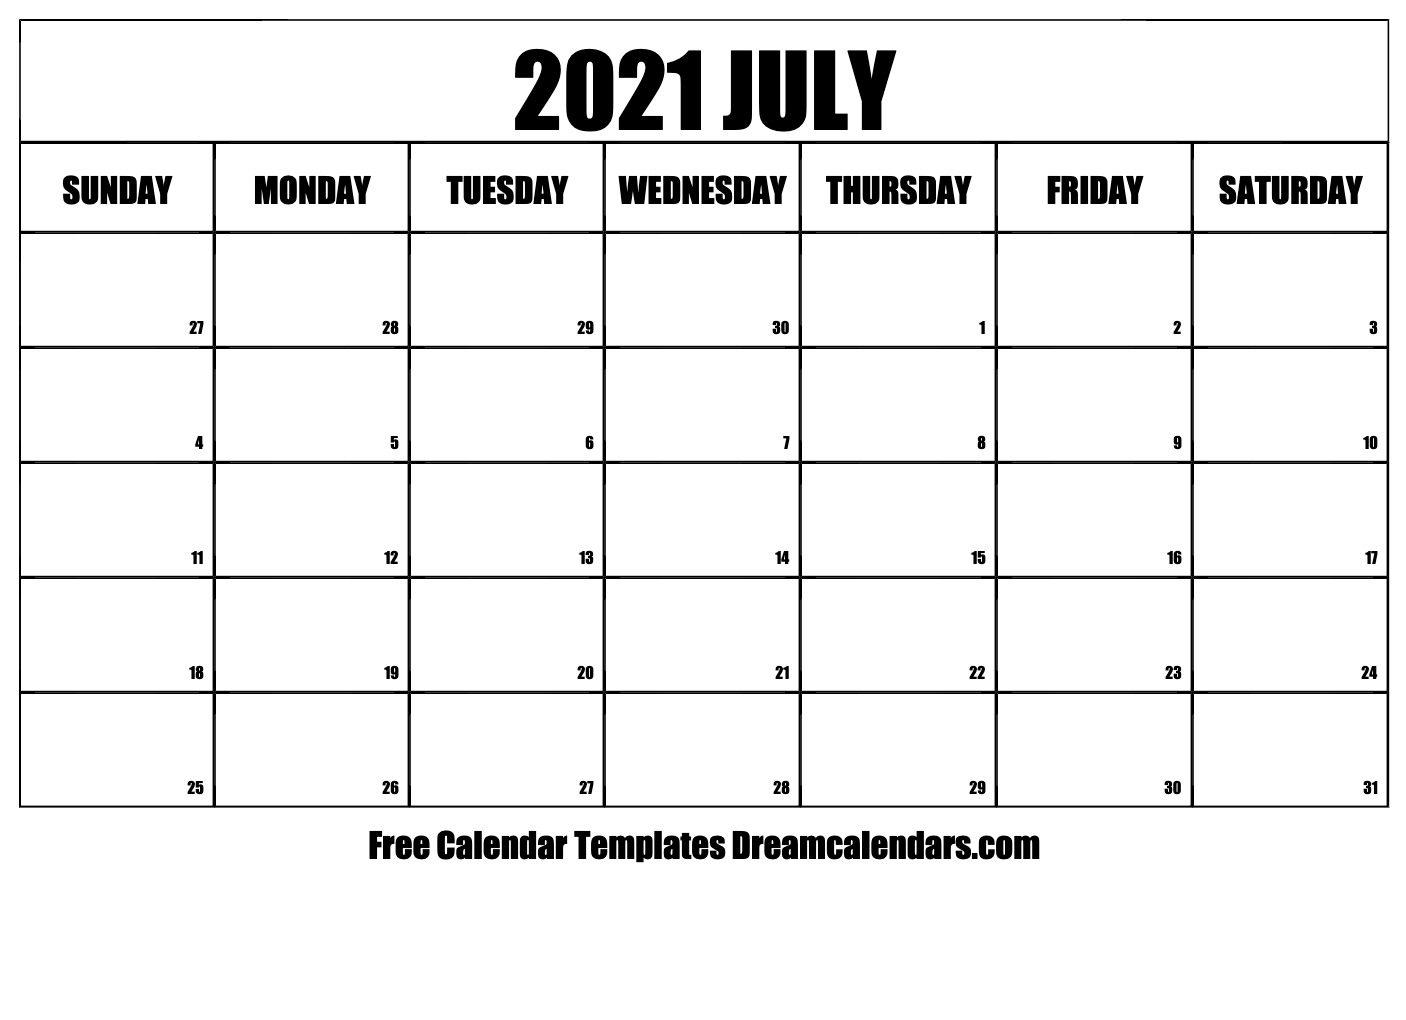 July 2021 Calendar   Free Blank Printable Templates Within Printable Sunrise And Sunset Calander 2021